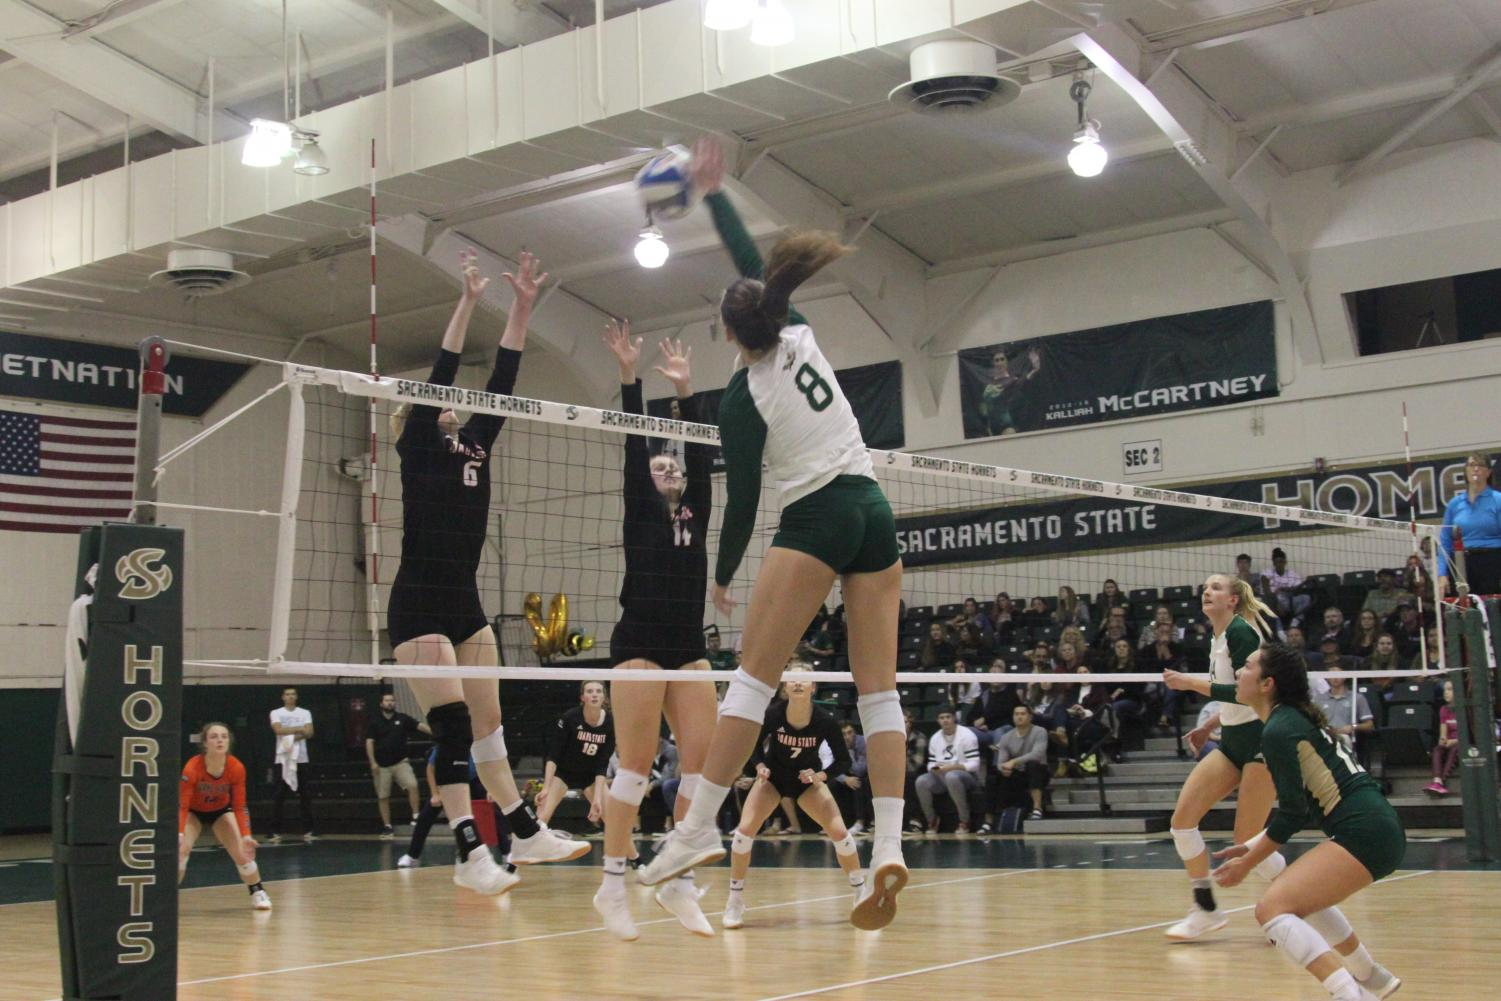 Sac State senior outside hitter Sarah Davis spikes the ball against Idaho State on Saturday, Nov. 16 at The Nest. As the lone senior, Davis had a match-high 17 kills in the win over the Tigers.